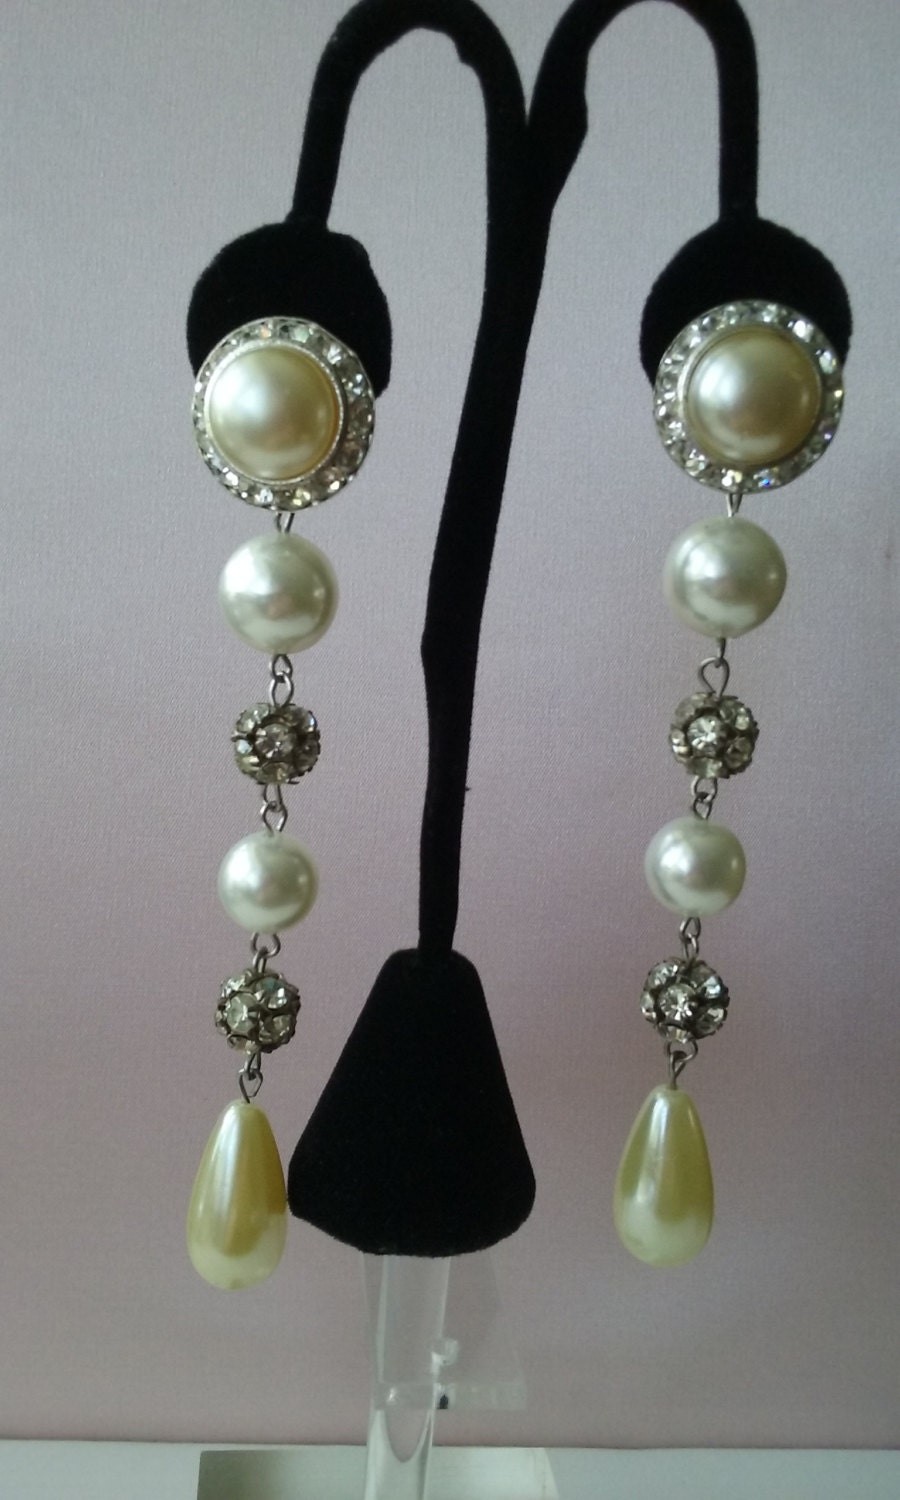 Pearl Rhinestone Clip Earrings Vintage 1950s Faux Pearls With